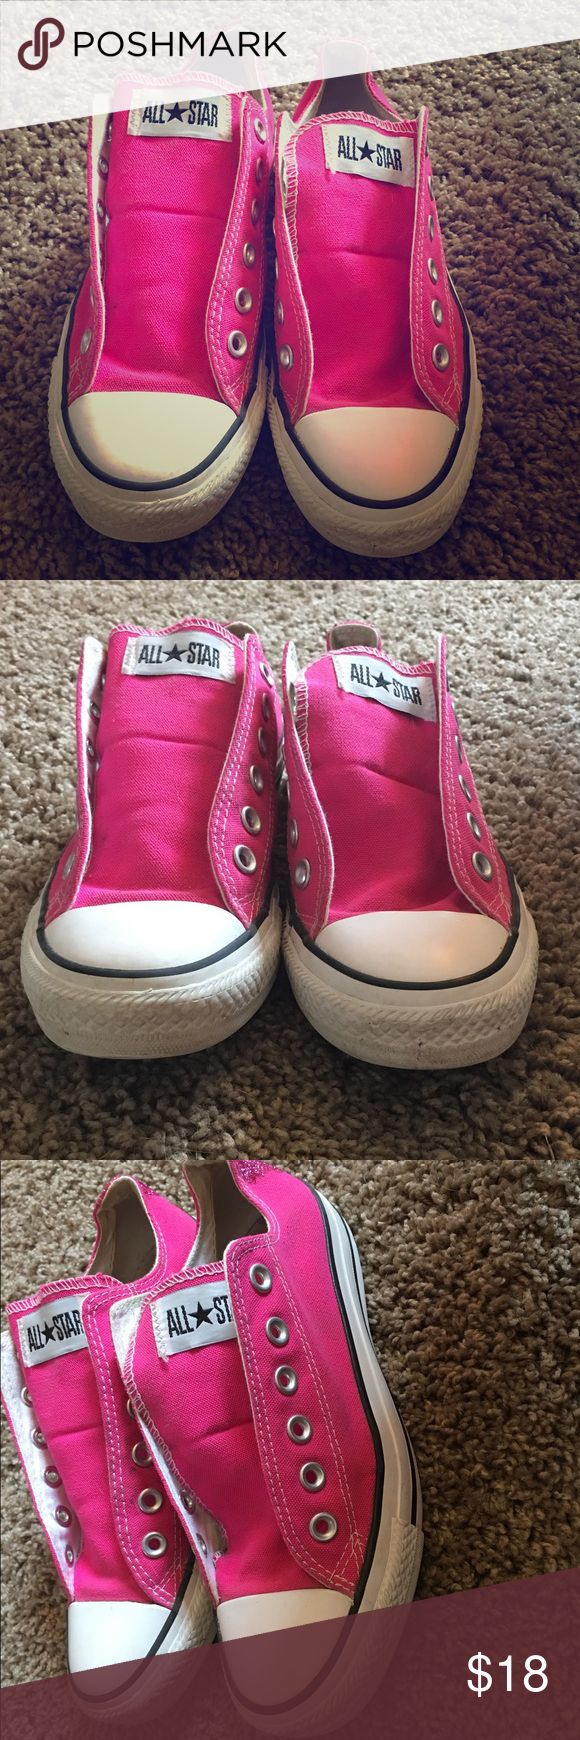 Hot pink converse Great condition! Size 7. Only missing shoelaces, but have a lot of life left to them!! Glitter on the heels, super cute! Converse Shoes Sneakers